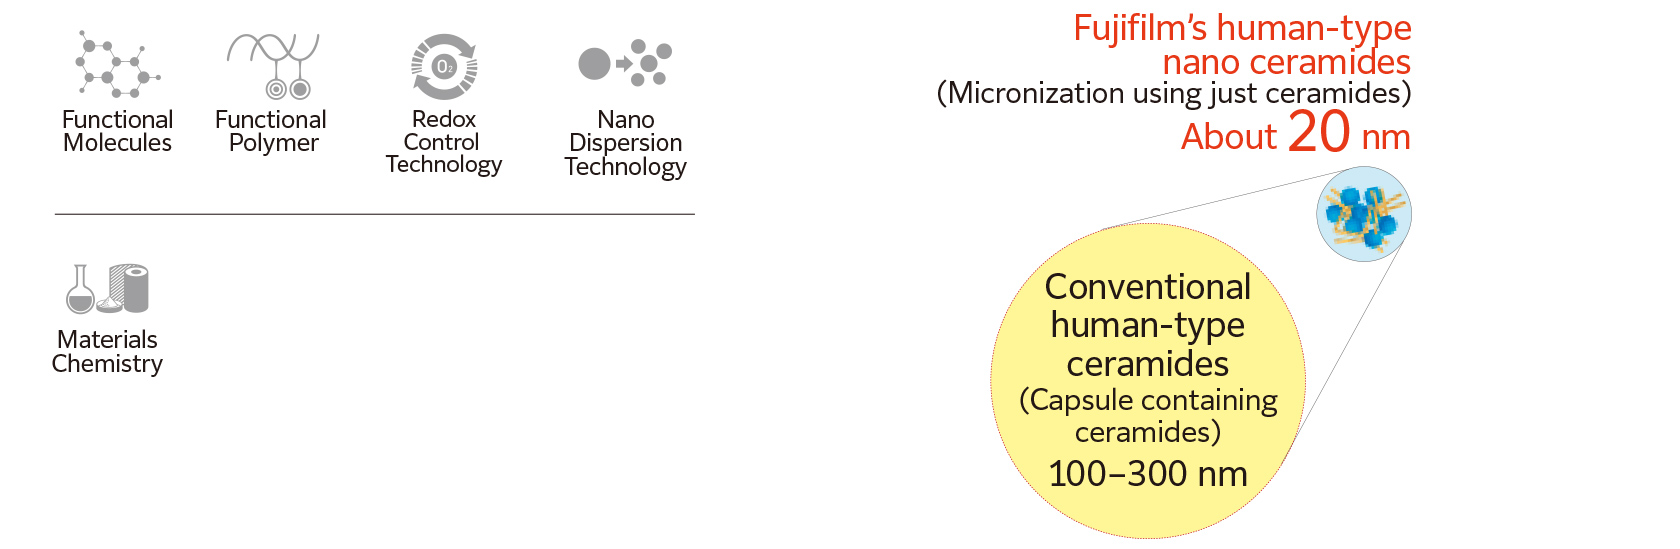 Functional Molecules Functional Polymer Redox Control Technology Nano Dispersion Technology Materials Chemistry